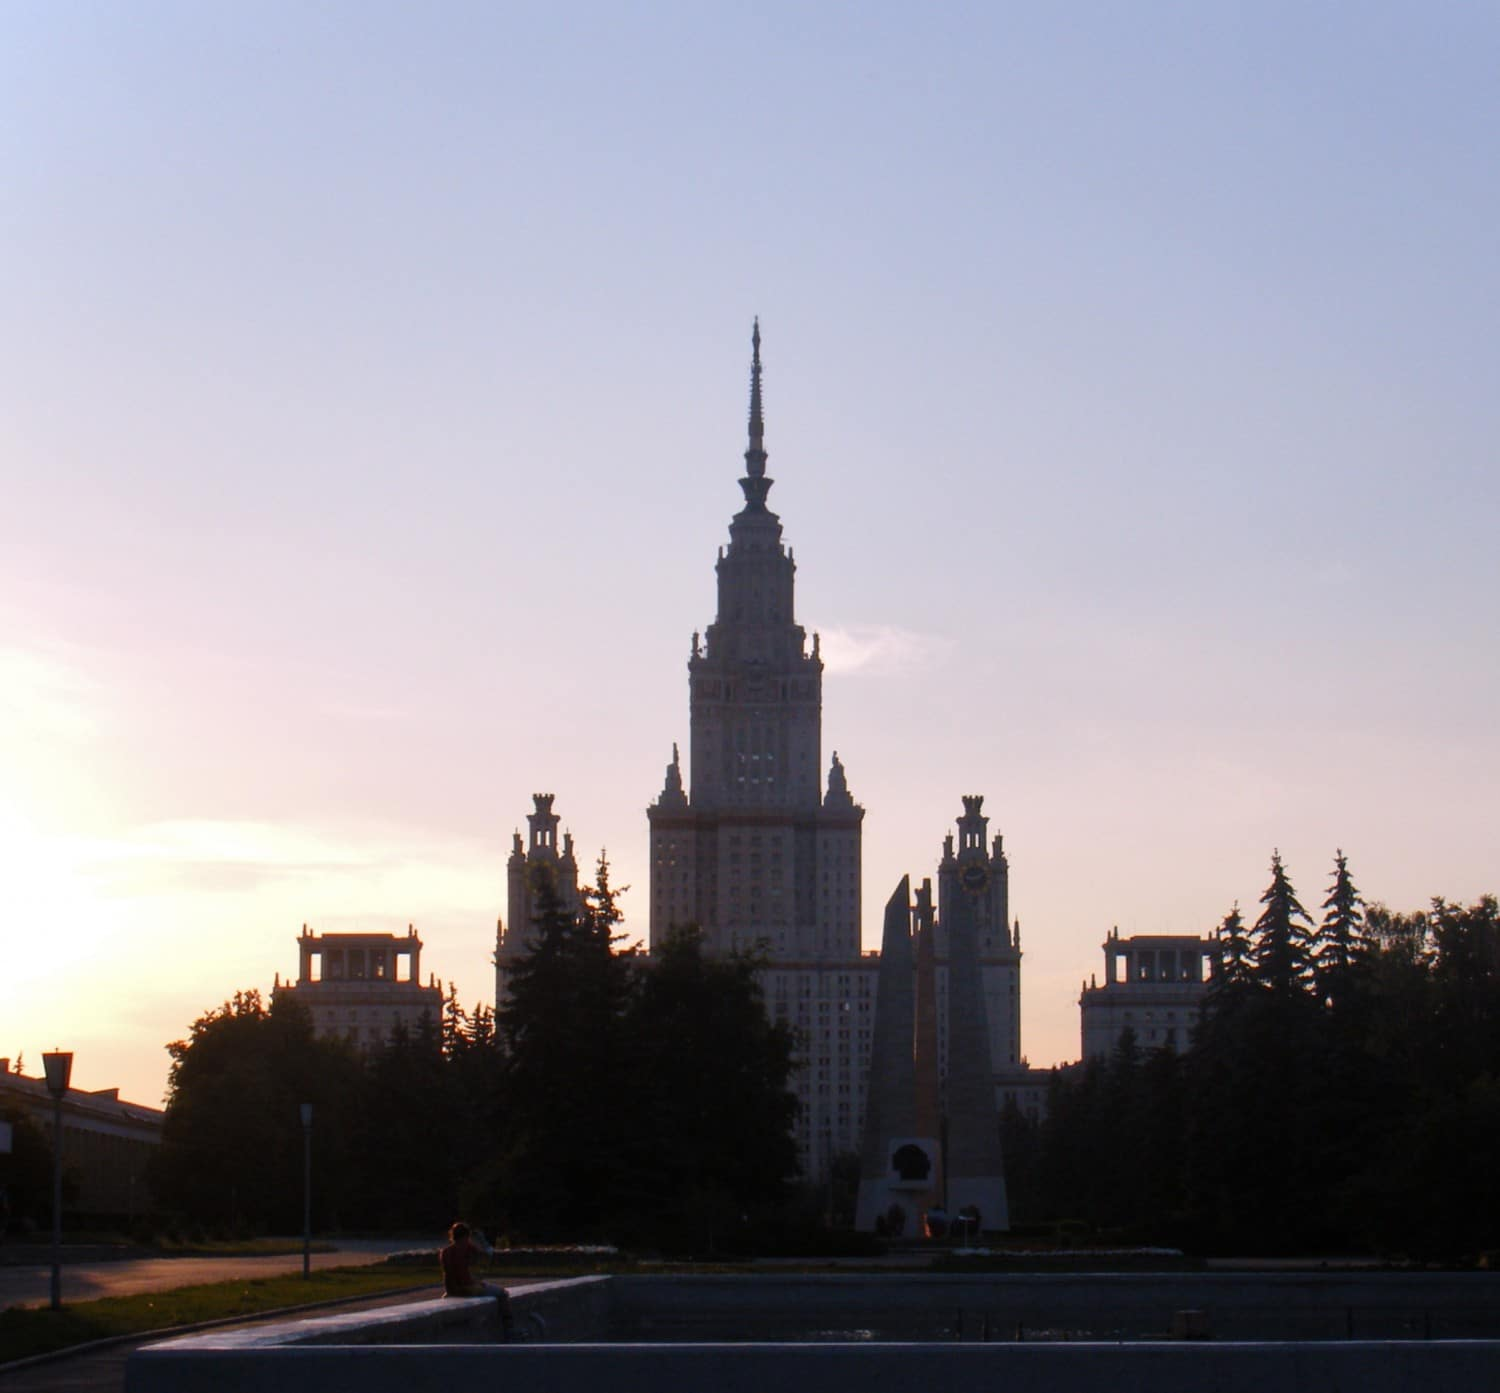 Moscow State University - Main Building (where most students are housed)